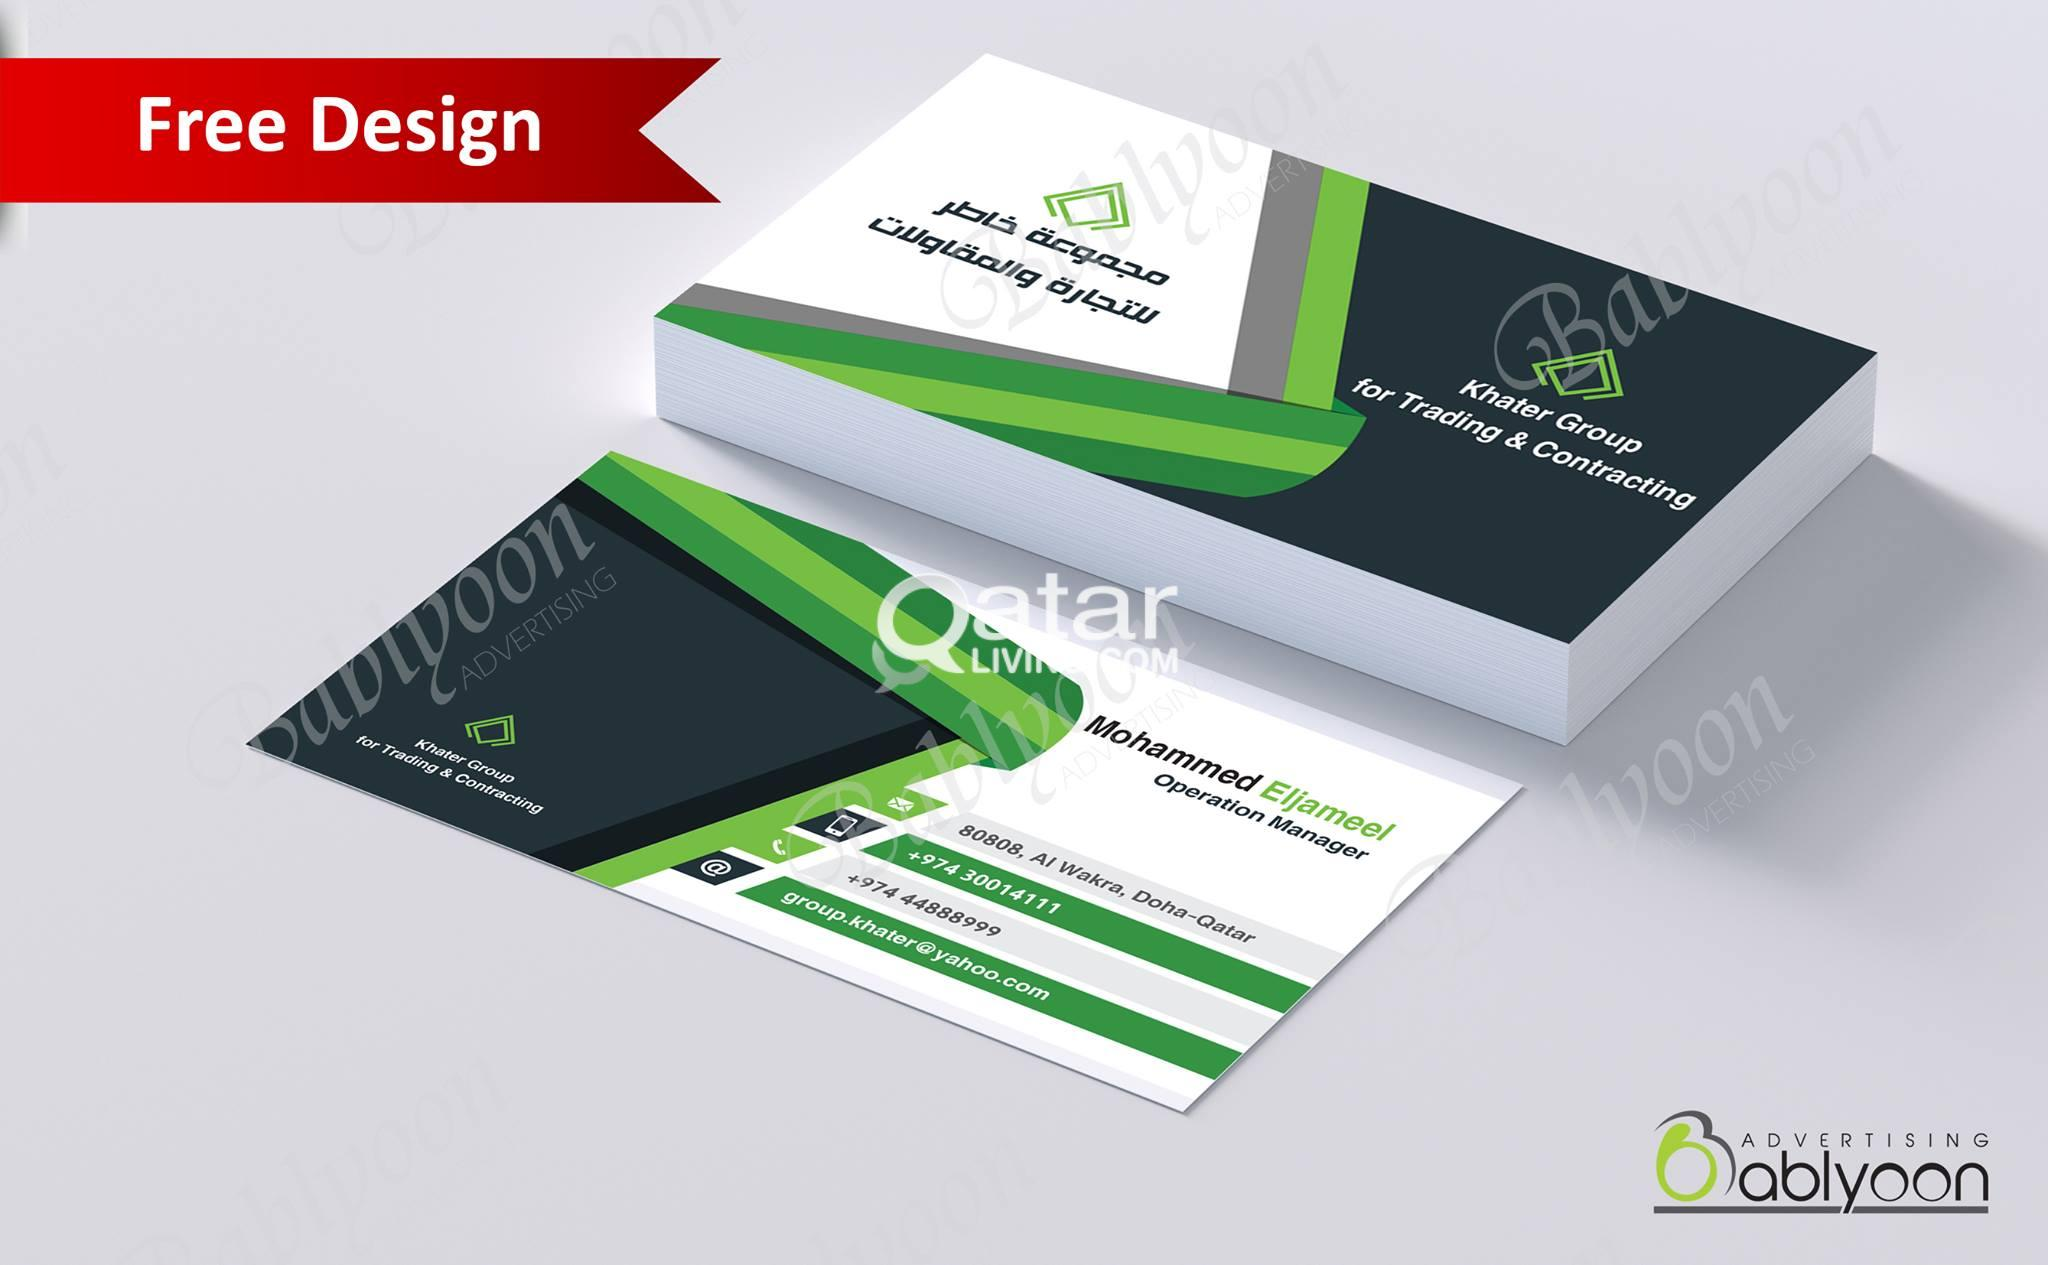 Business Card Printing (within 15 minutes) | Qatar Living